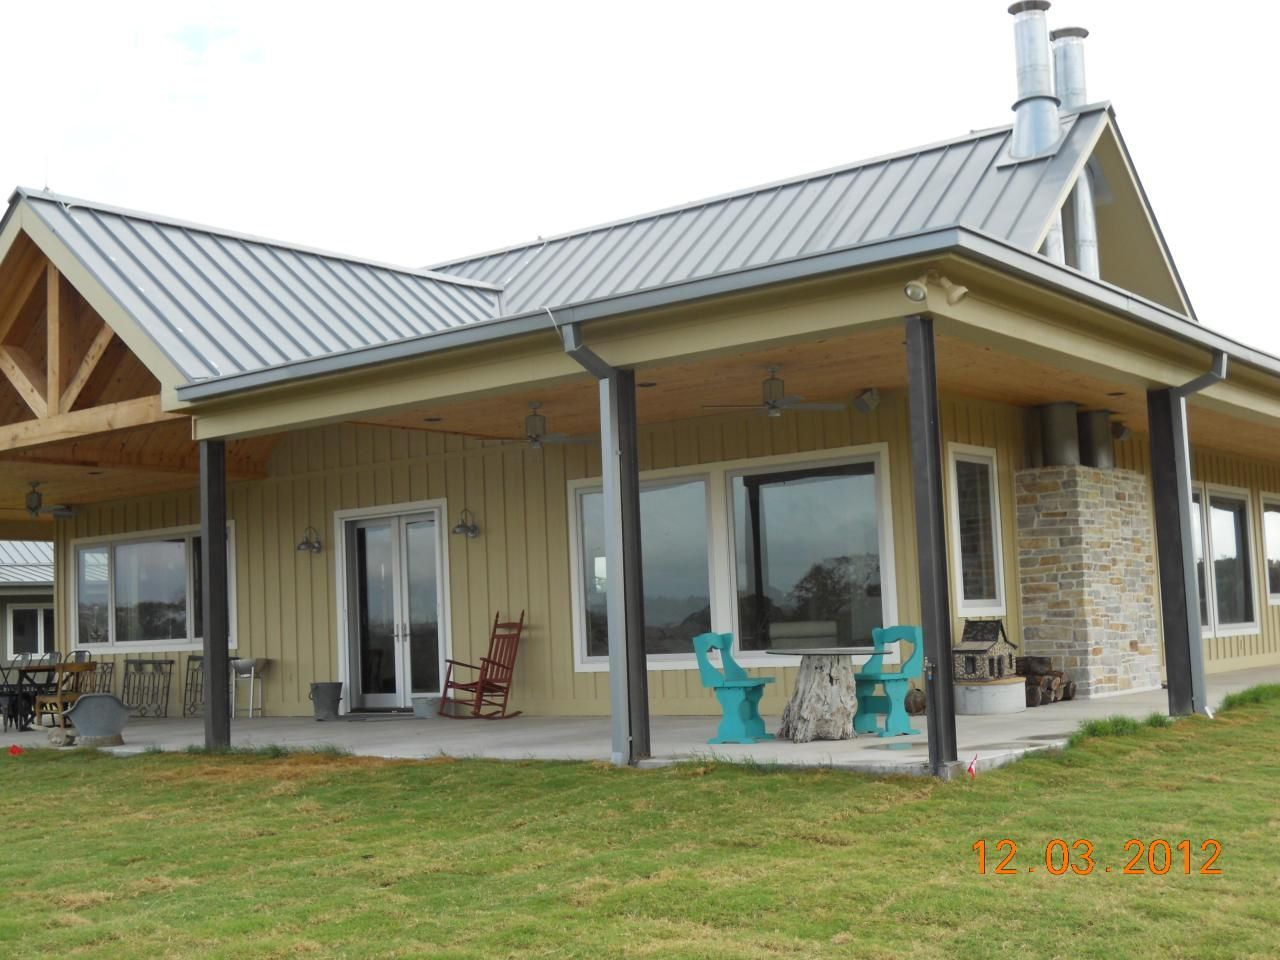 Metal Building Design Ideas kodiak steel homes standard models prefabricat metal shed house plans house plan full All About Barndominium Floor Plans Benefit Cost Price And Design Metal Roof Housesmetal Building